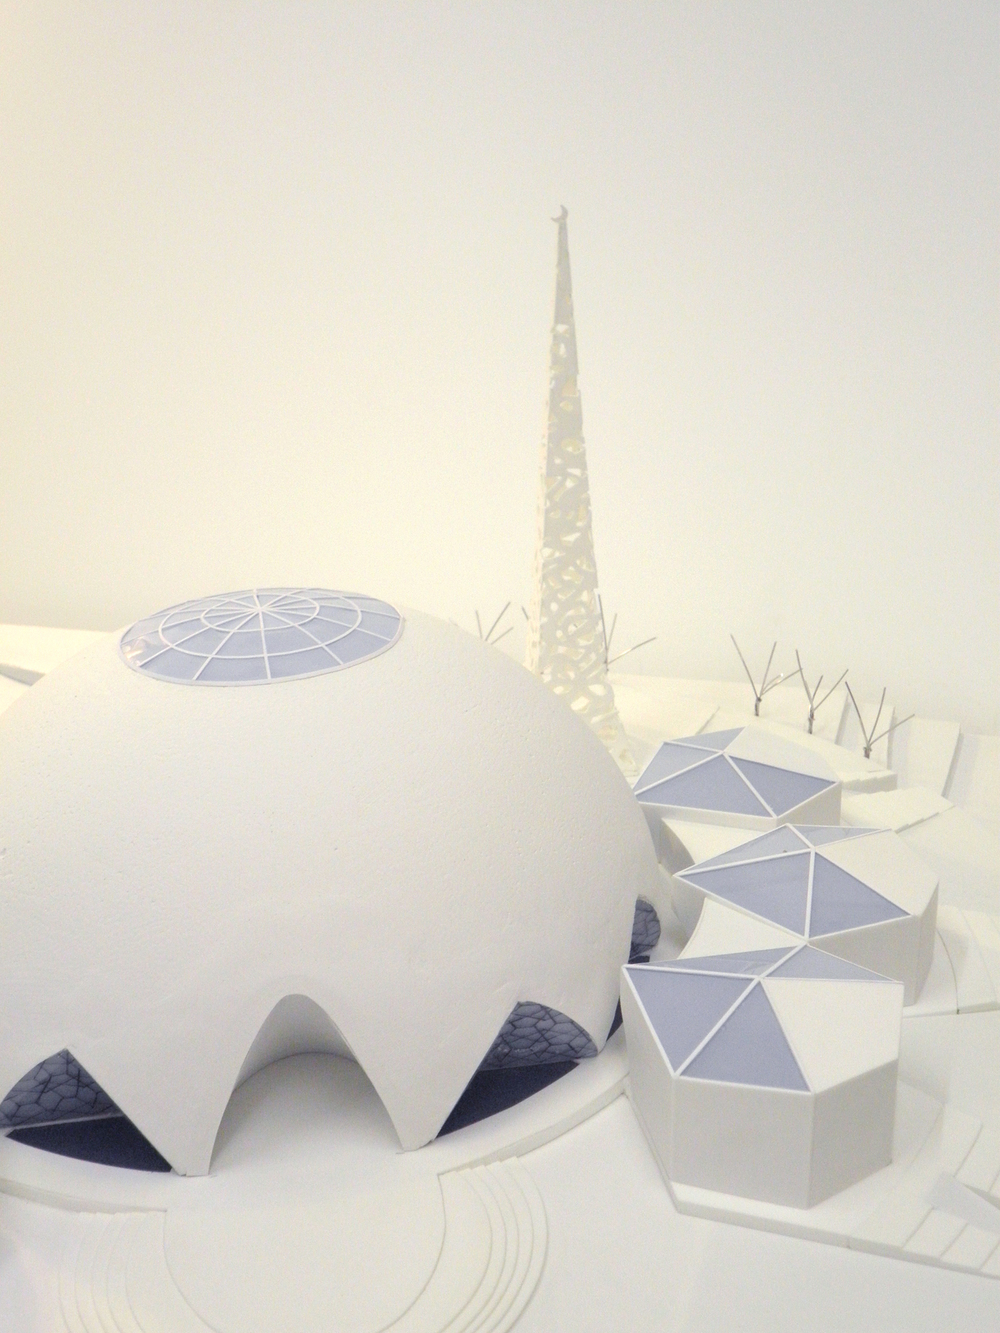 1:200 model of hemispherical mosque and surrounding structures